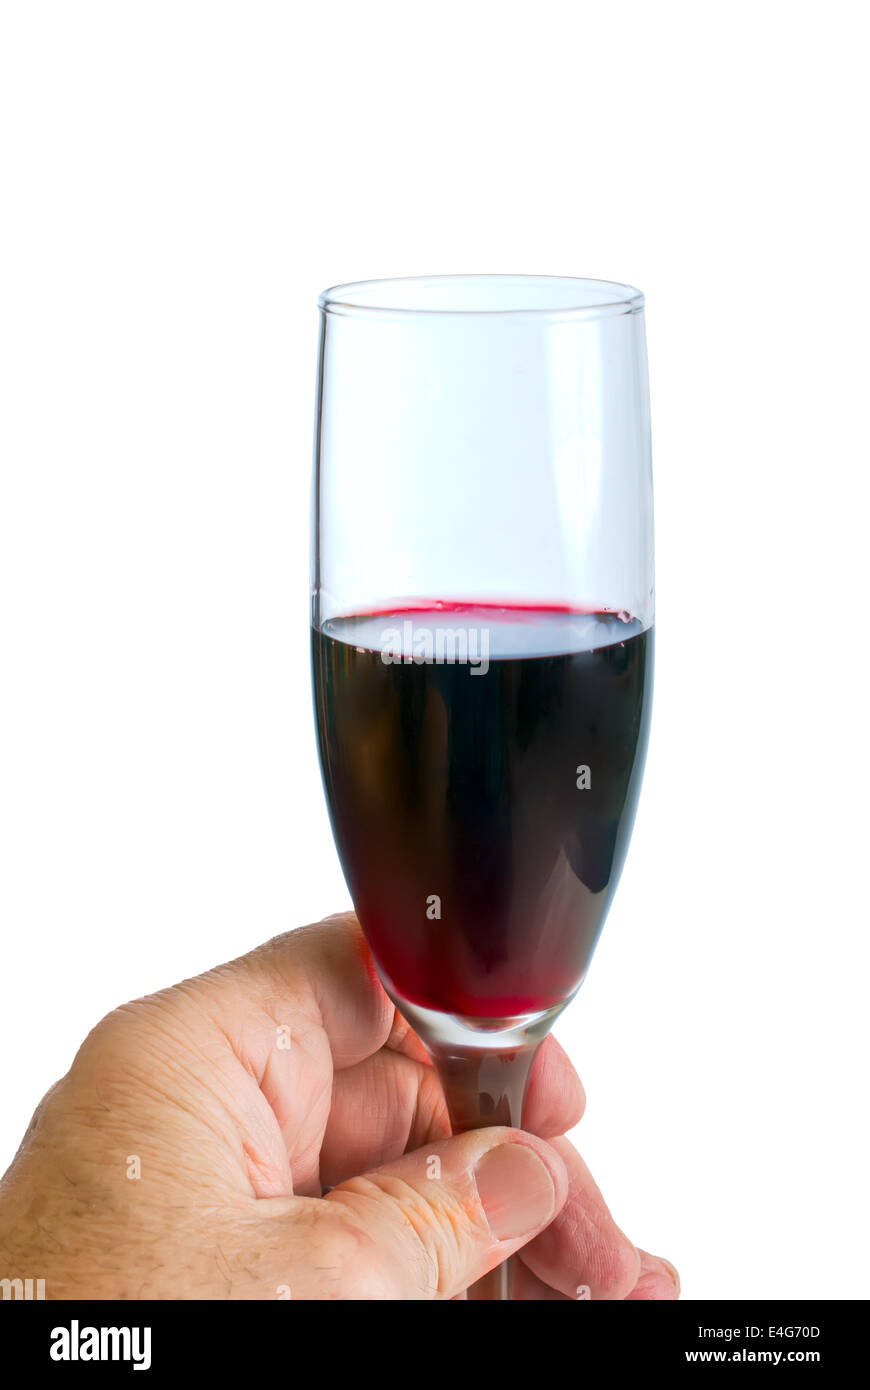 Tasting A Small Glass Of Red Wine Isolated Against A